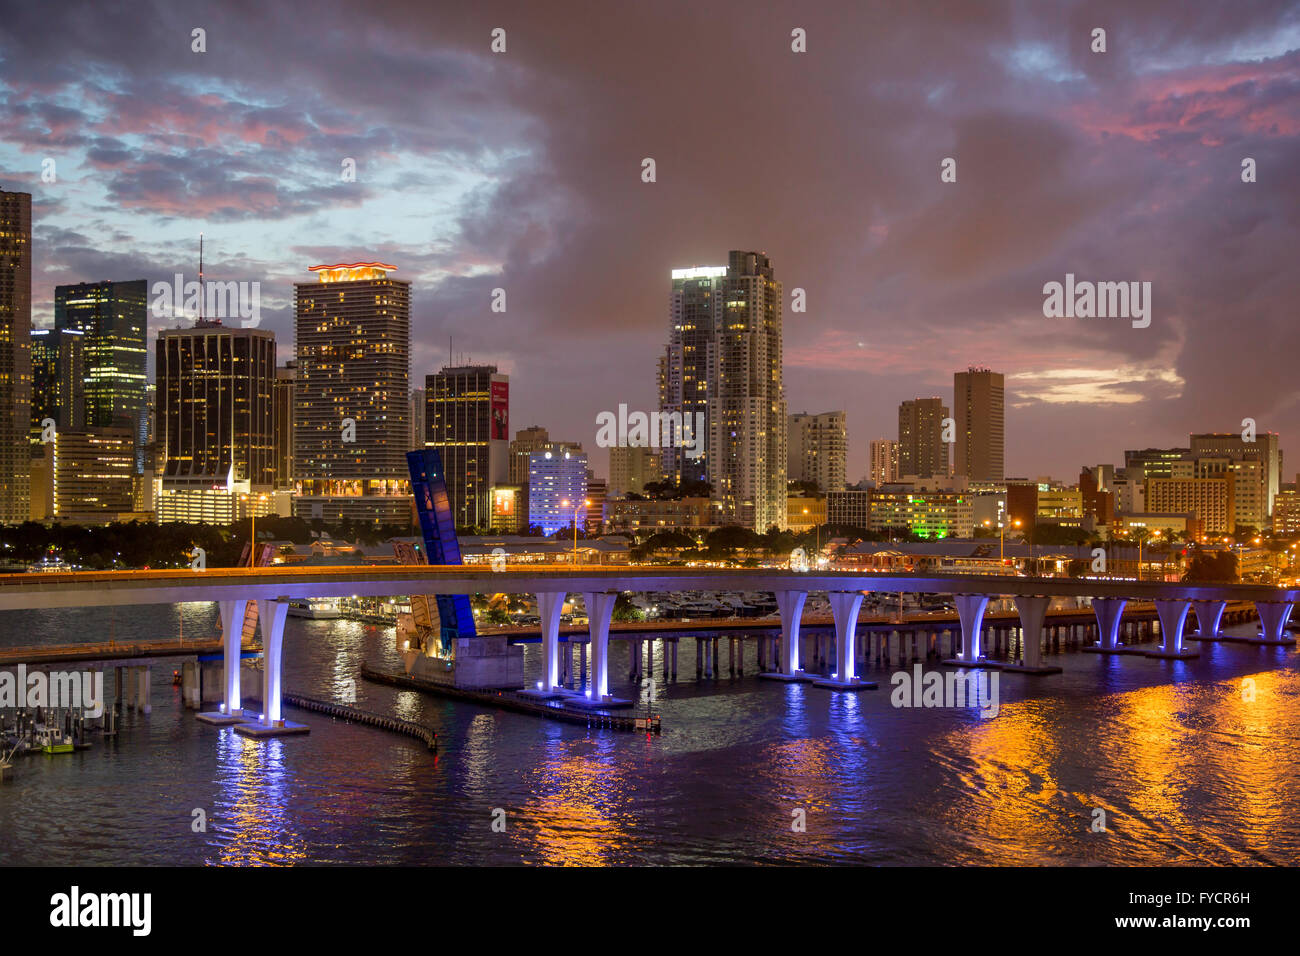 Twilight over the harbor and buildings of Miami, Florida, USA - Stock Image